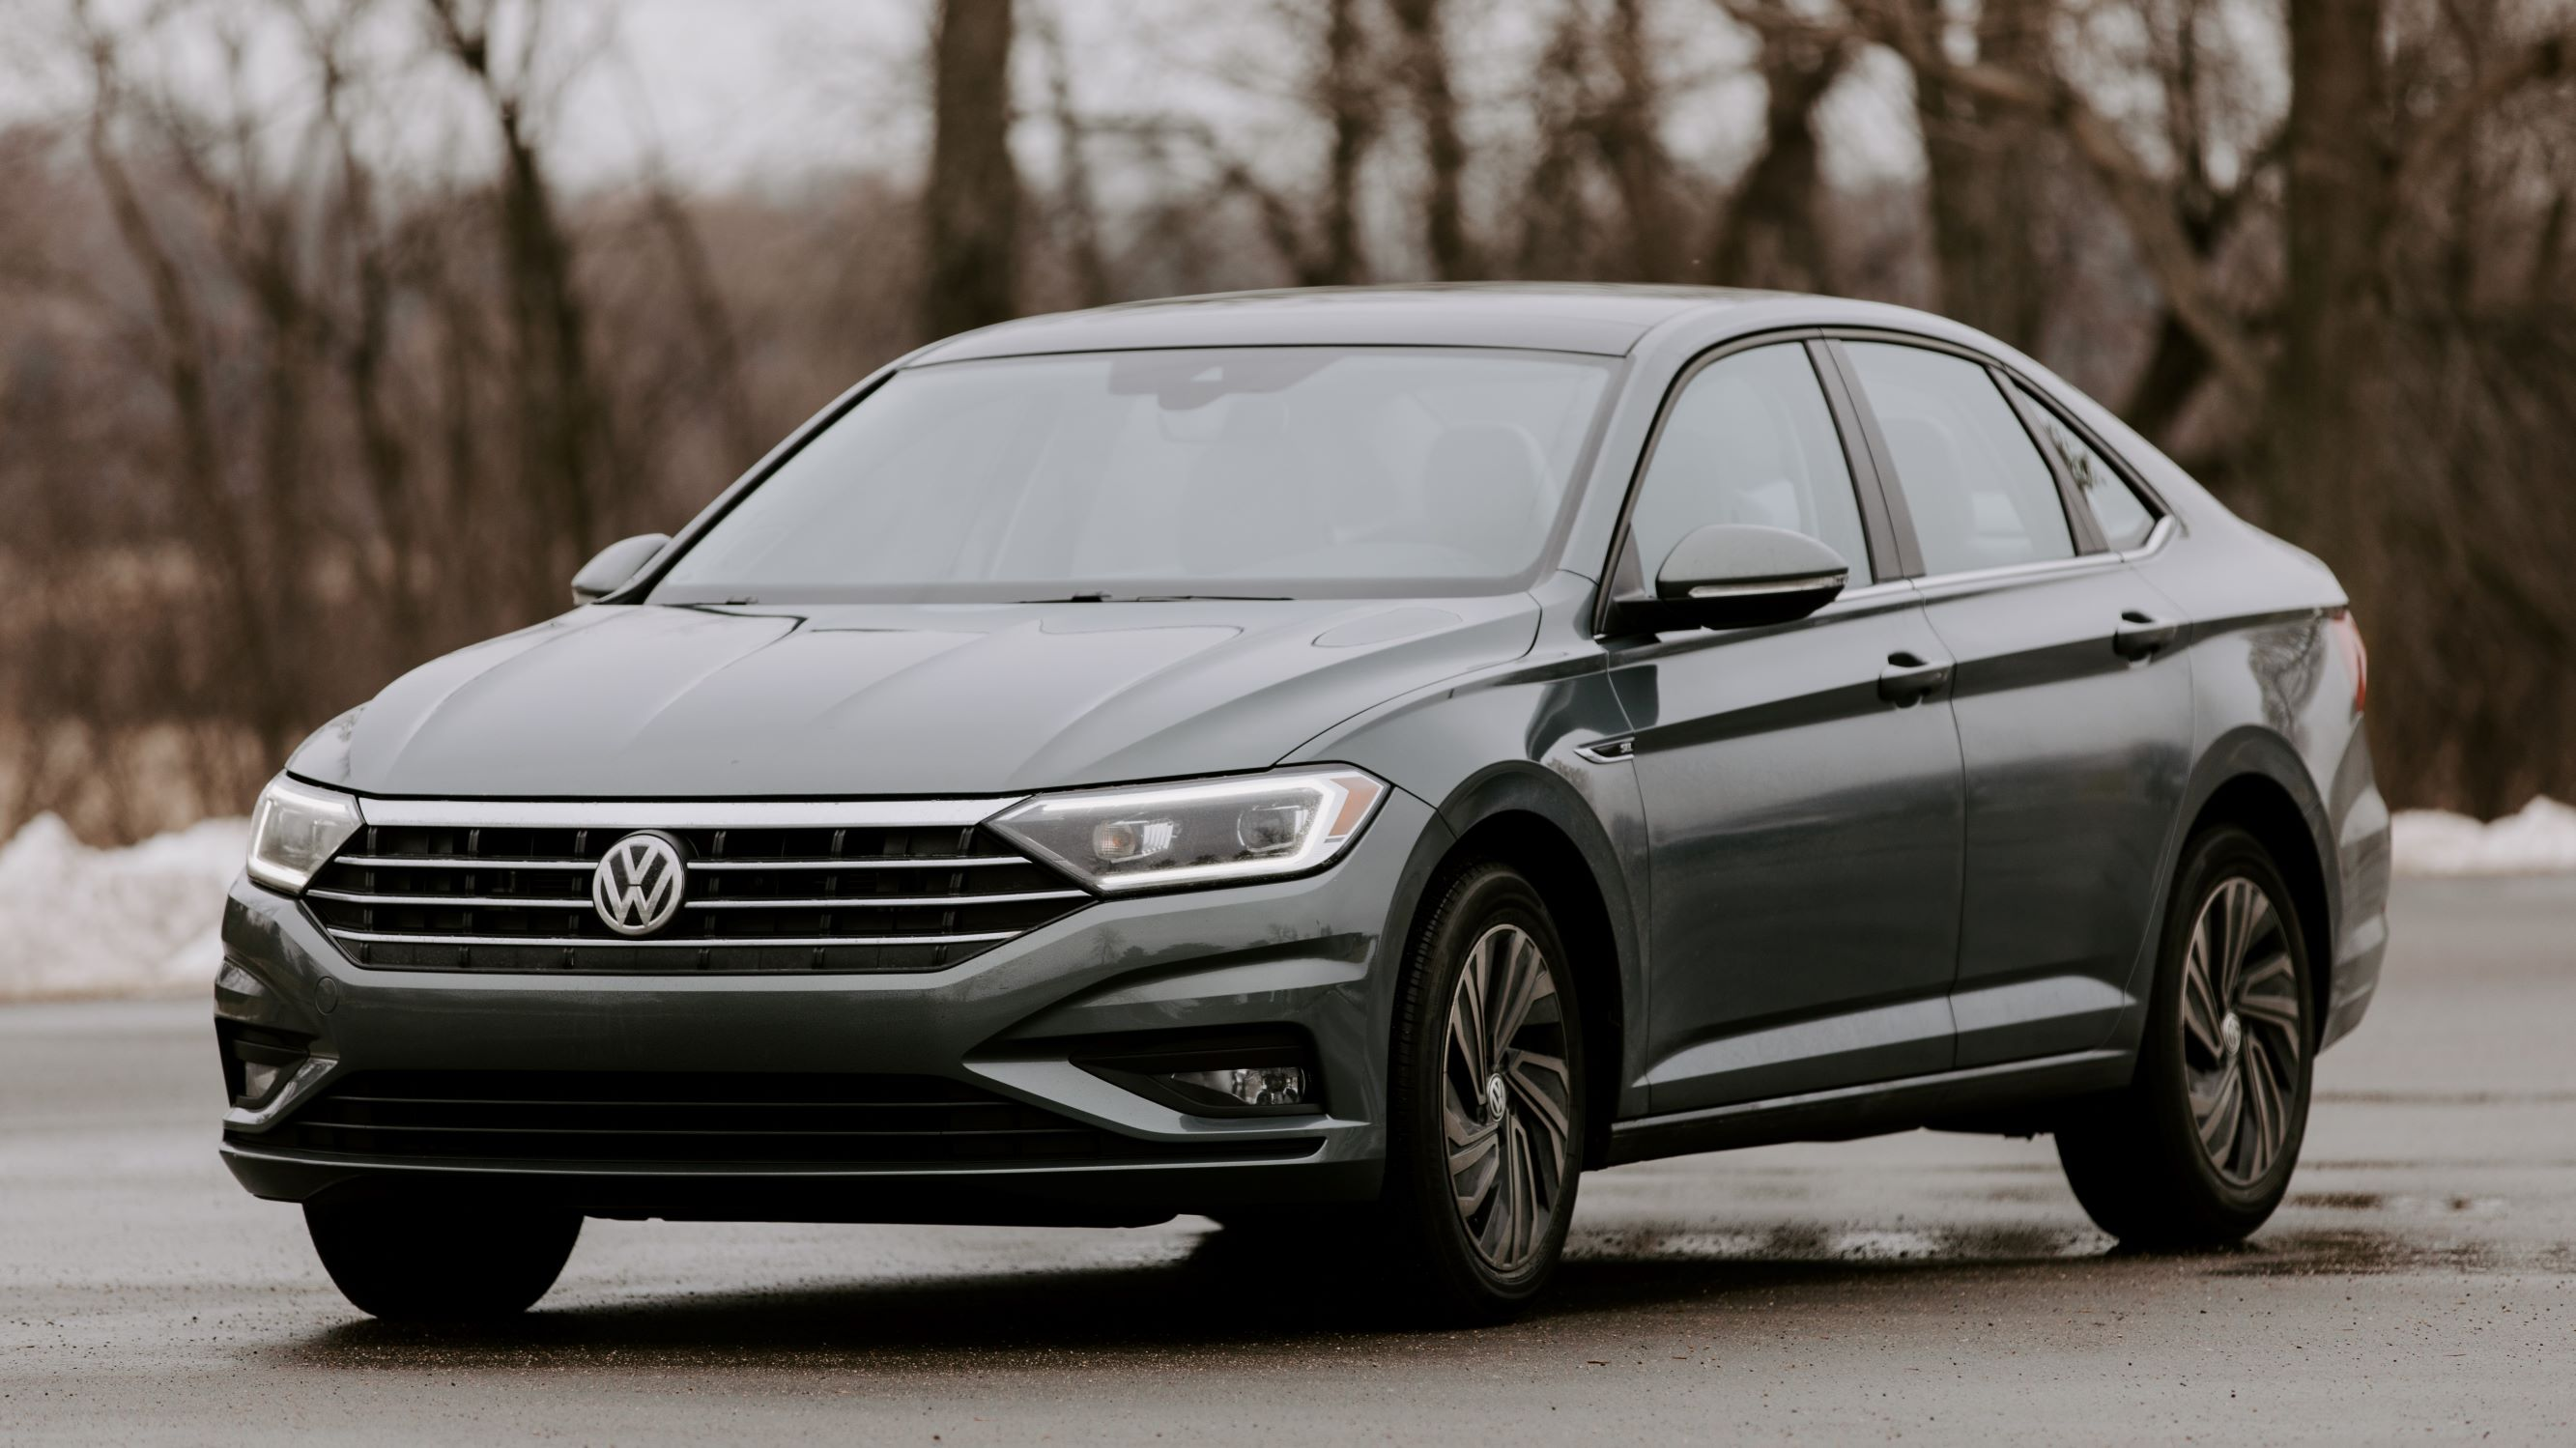 A new Digital Cockpit in the 2019 VW Jetta is a sign of things to